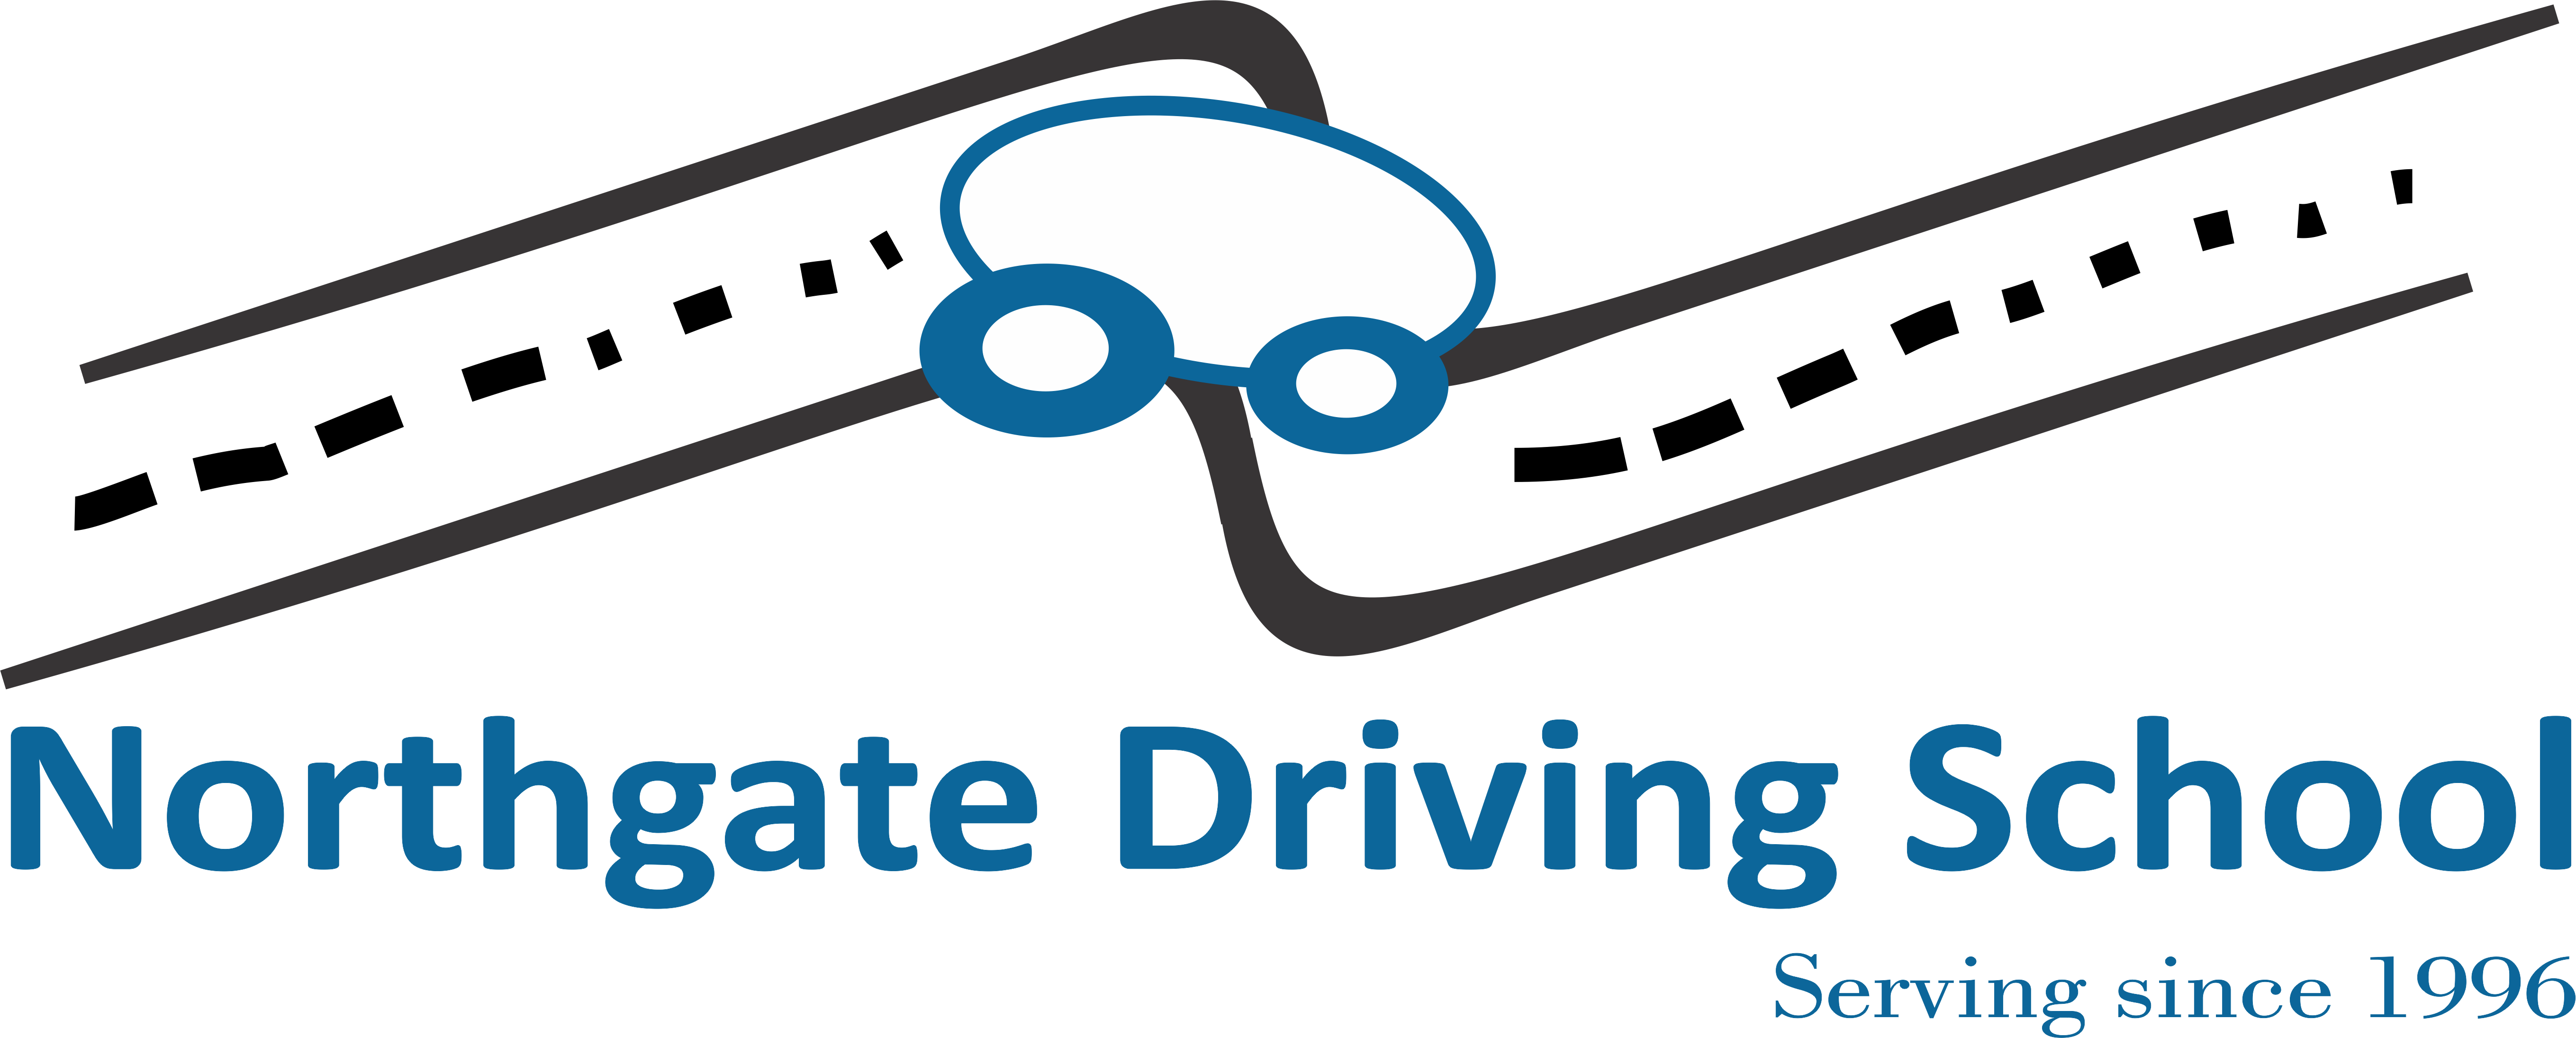 Driving school in edmonton. Drivers license clipart first driver